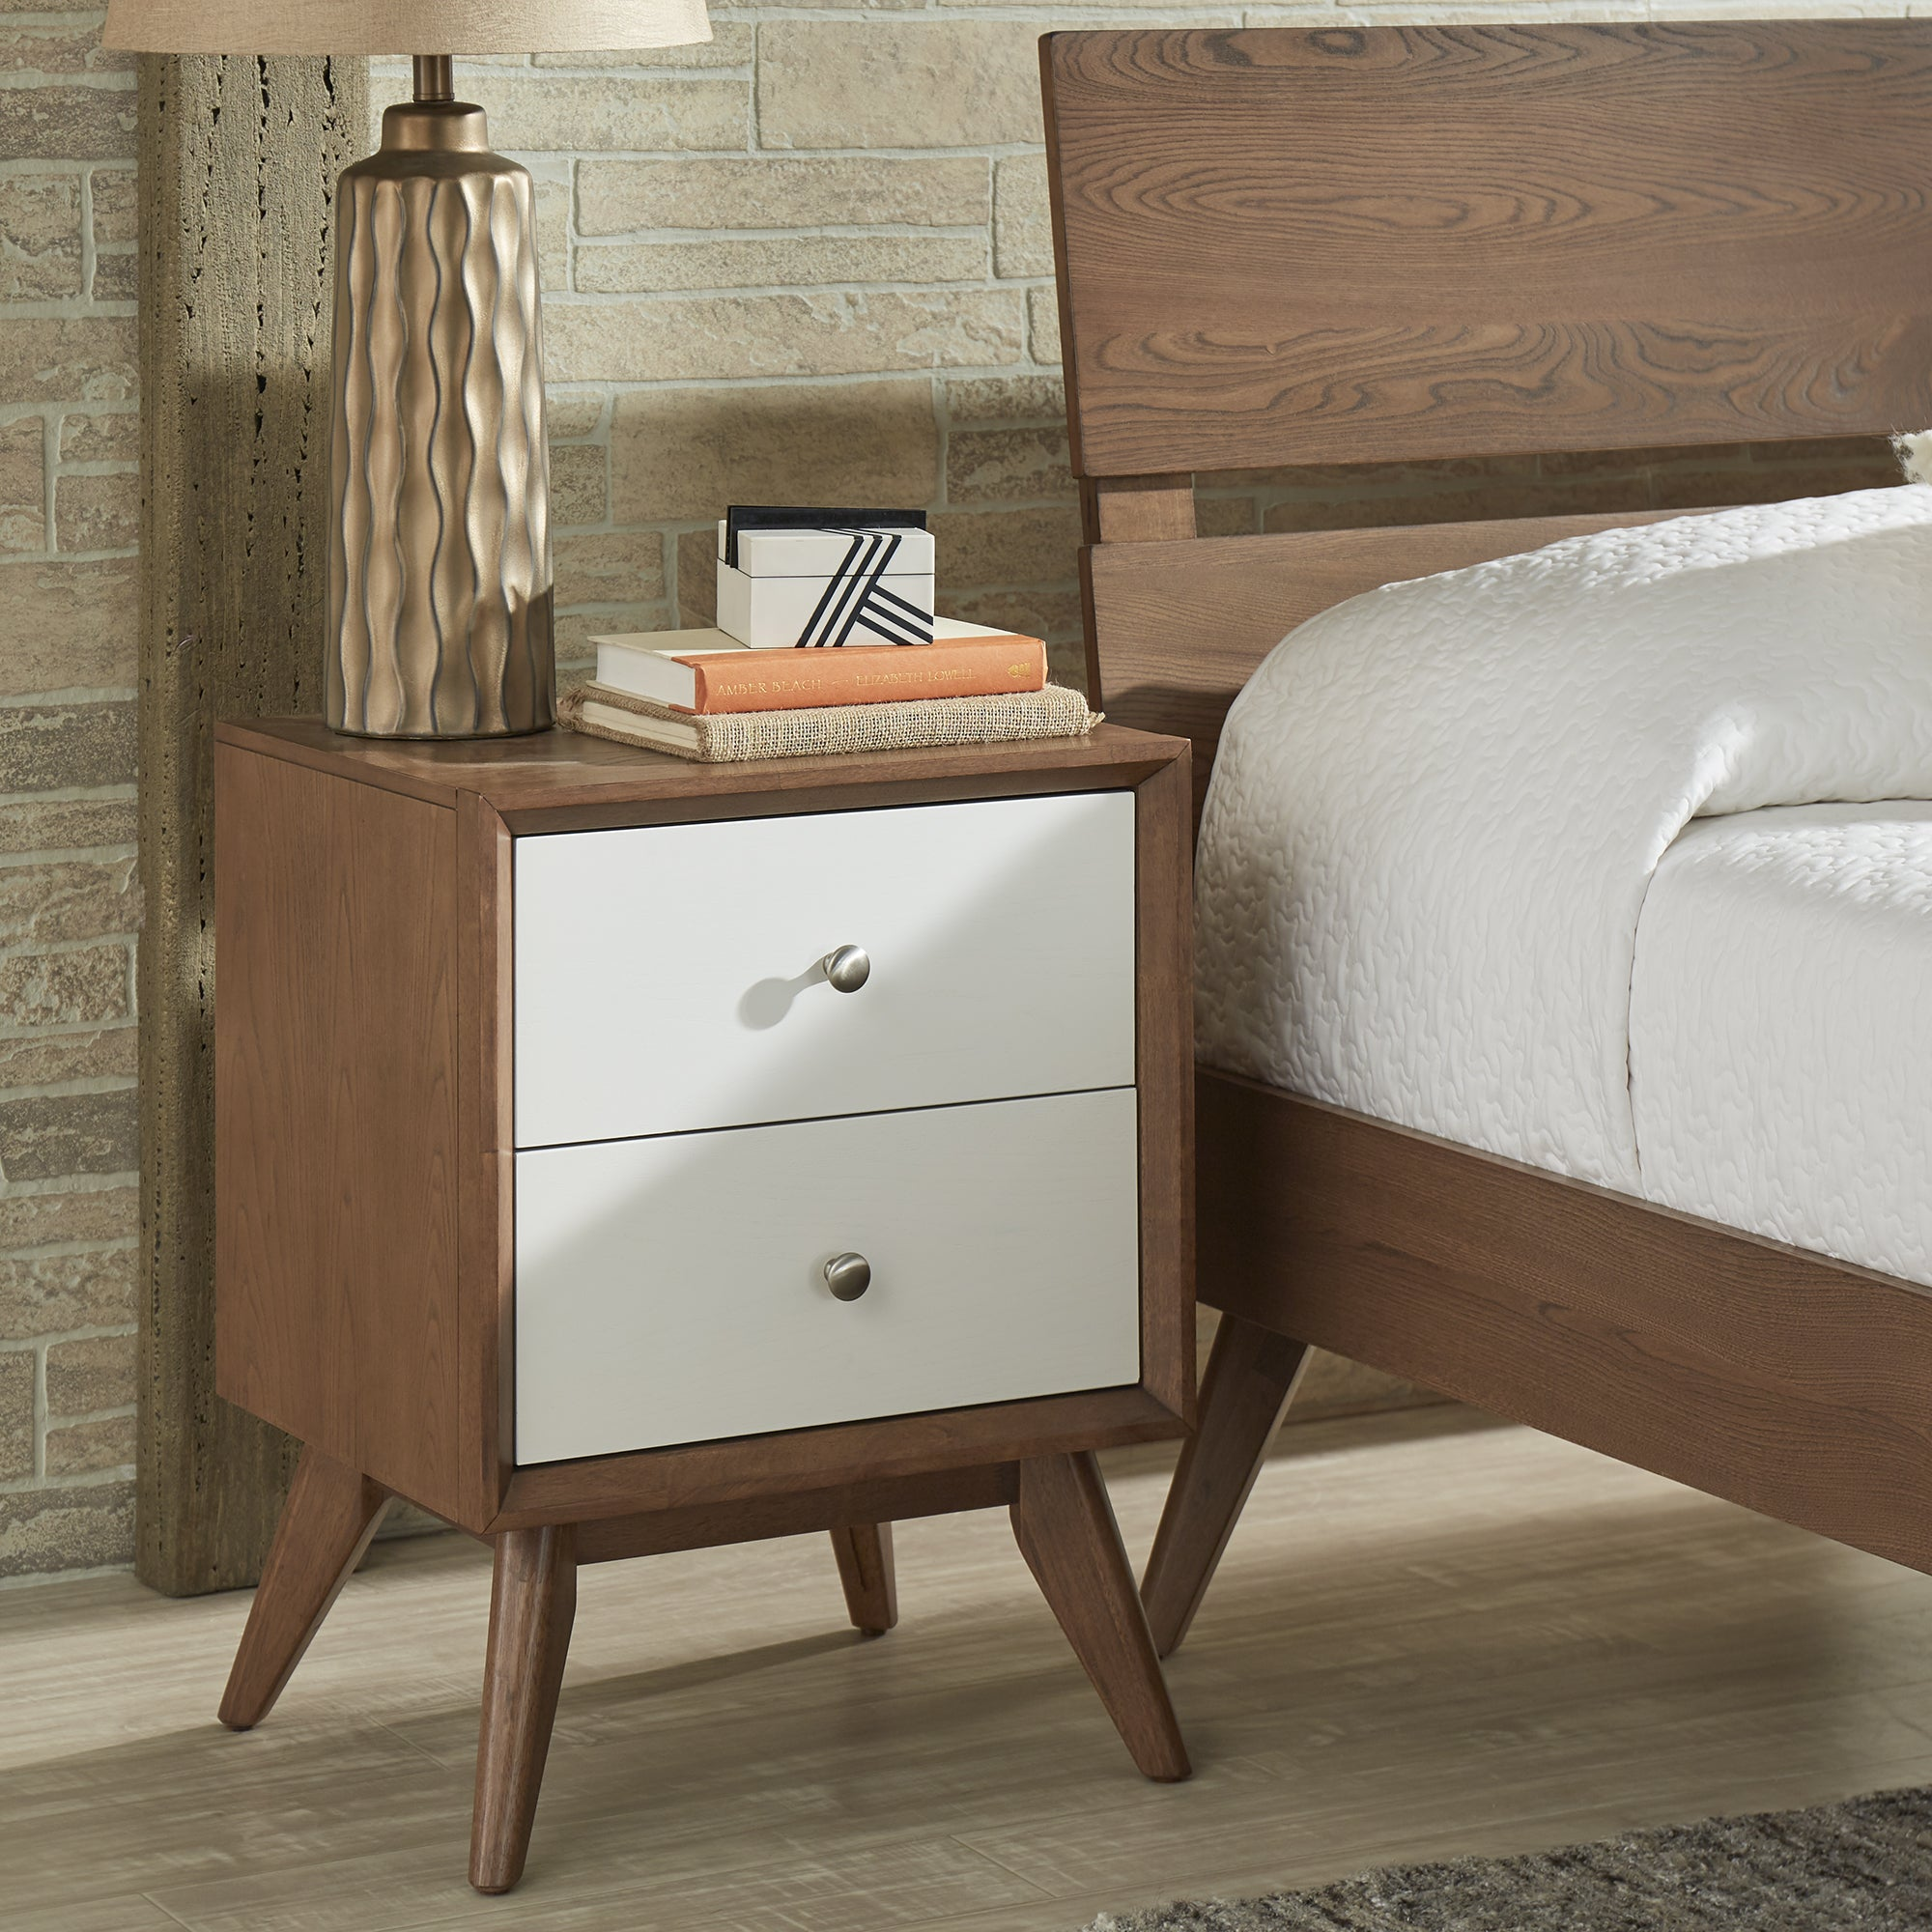 Sylvia Mid Century White and Walnut 2 Drawer Nightstand by iNSPIRE Q Modern  - Free Shipping Today - Overstock.com - 24174749